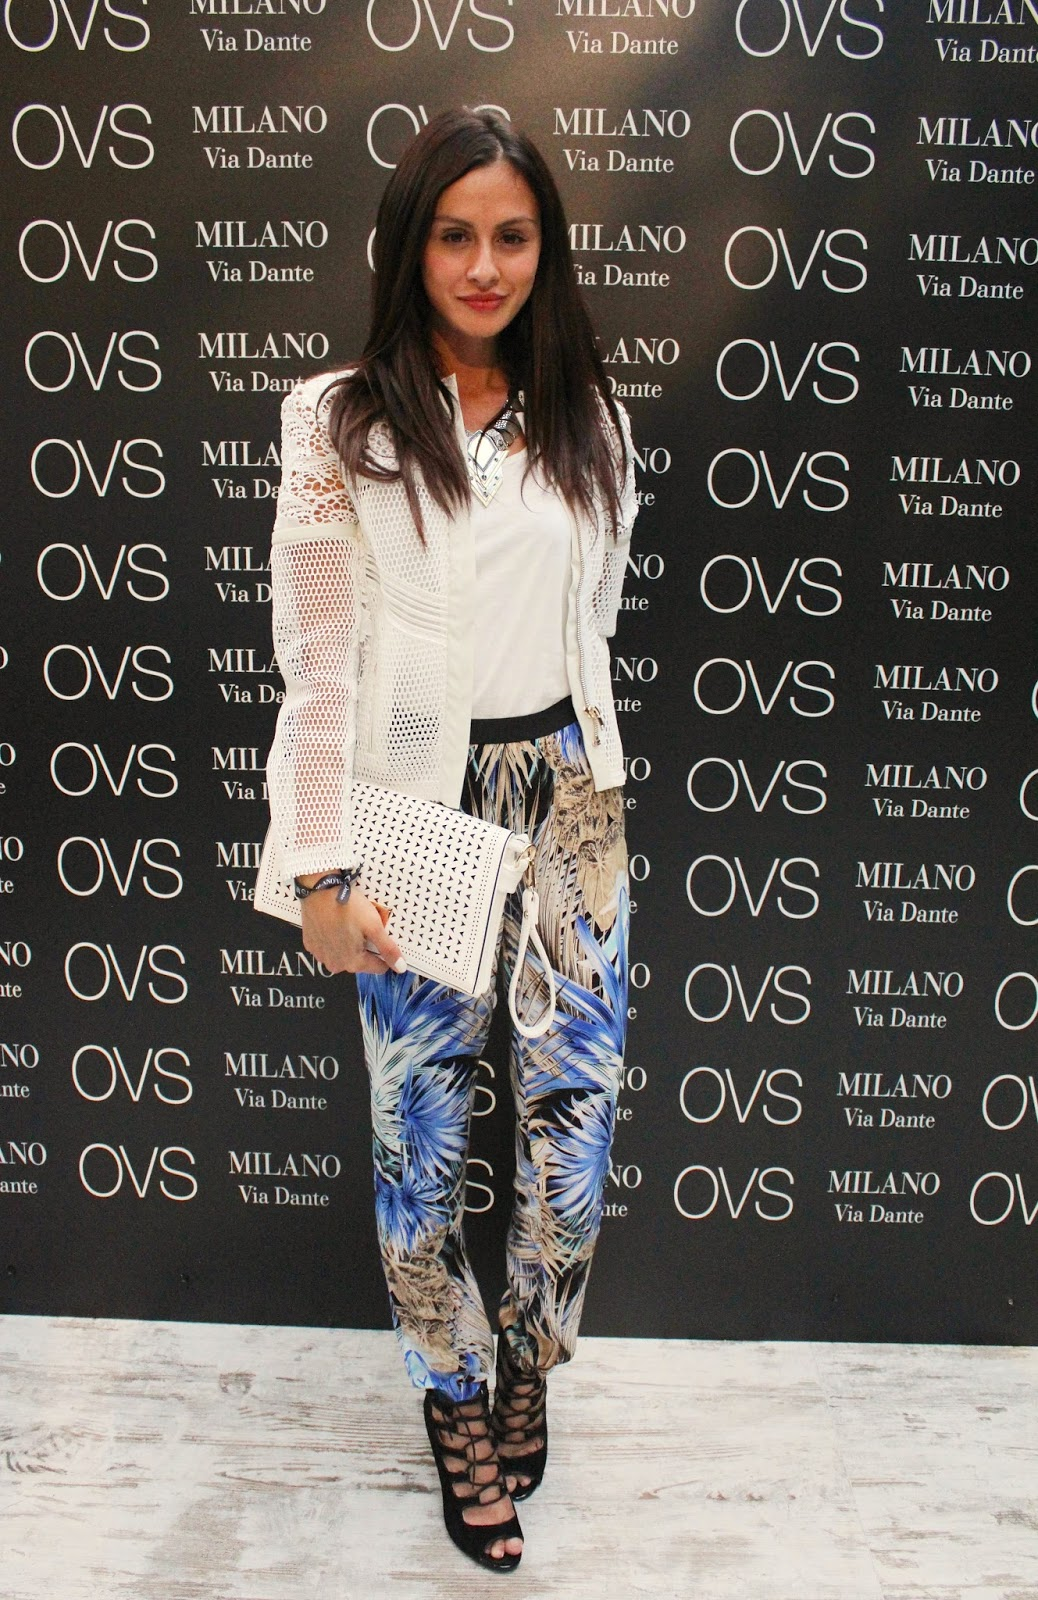 OVS VIA DANTE opening party a Milano